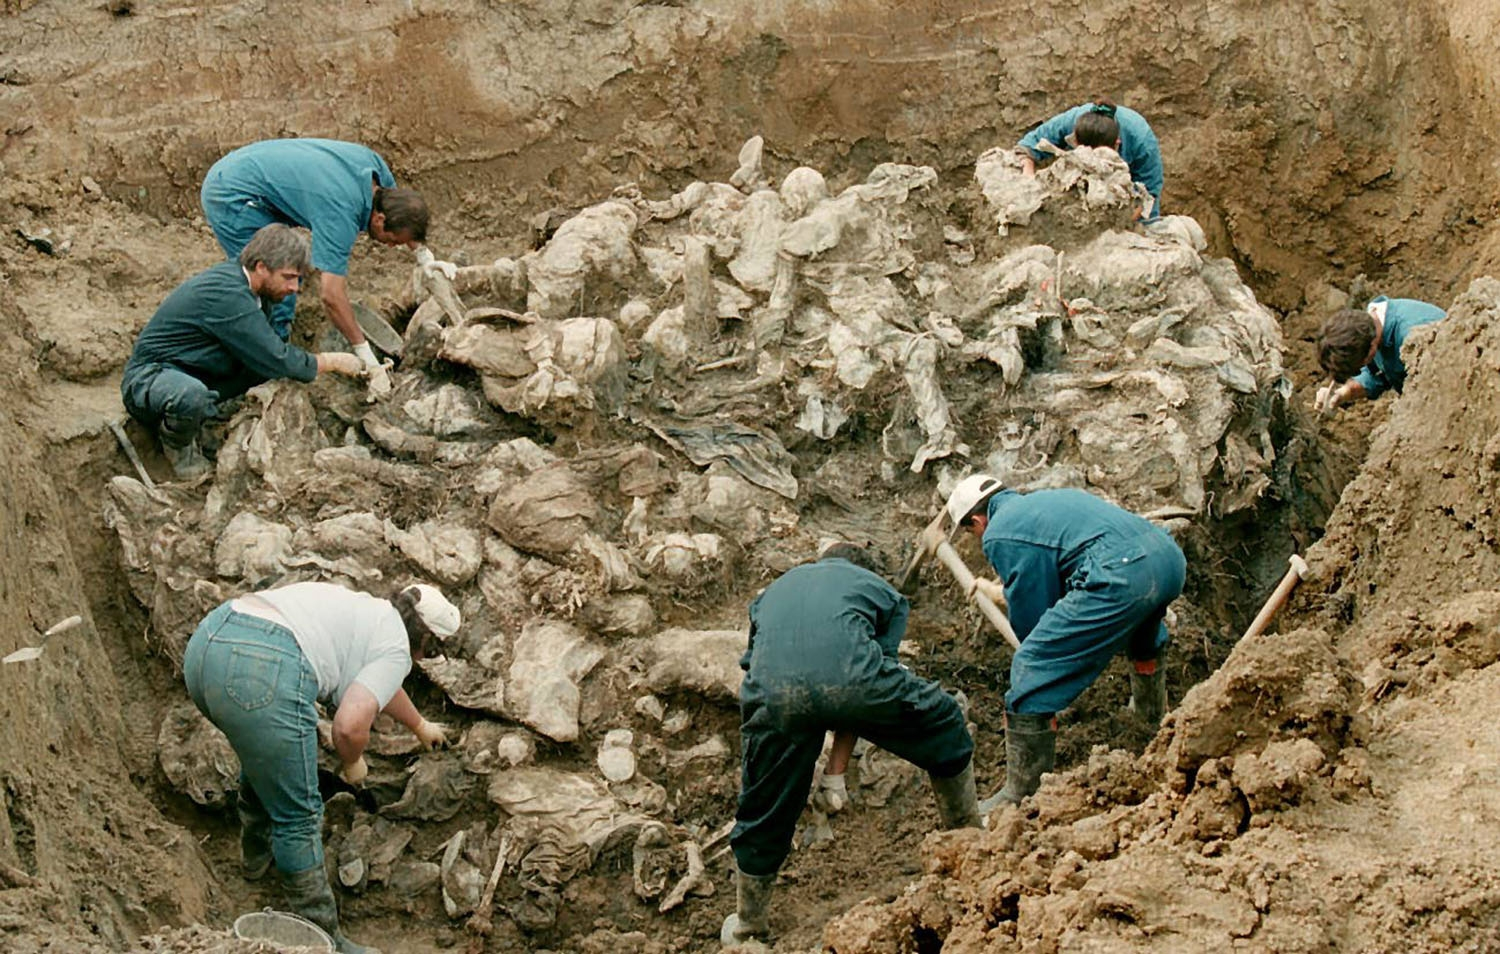 Forensic experts from the International war crimes tribunal in the Hague works on a pile of partly decomposed bodies, 24 July 1996 found in a mass grave in the village of Pilica some 300 km northeast of Sarajevo. The victims in the human sculpture is said